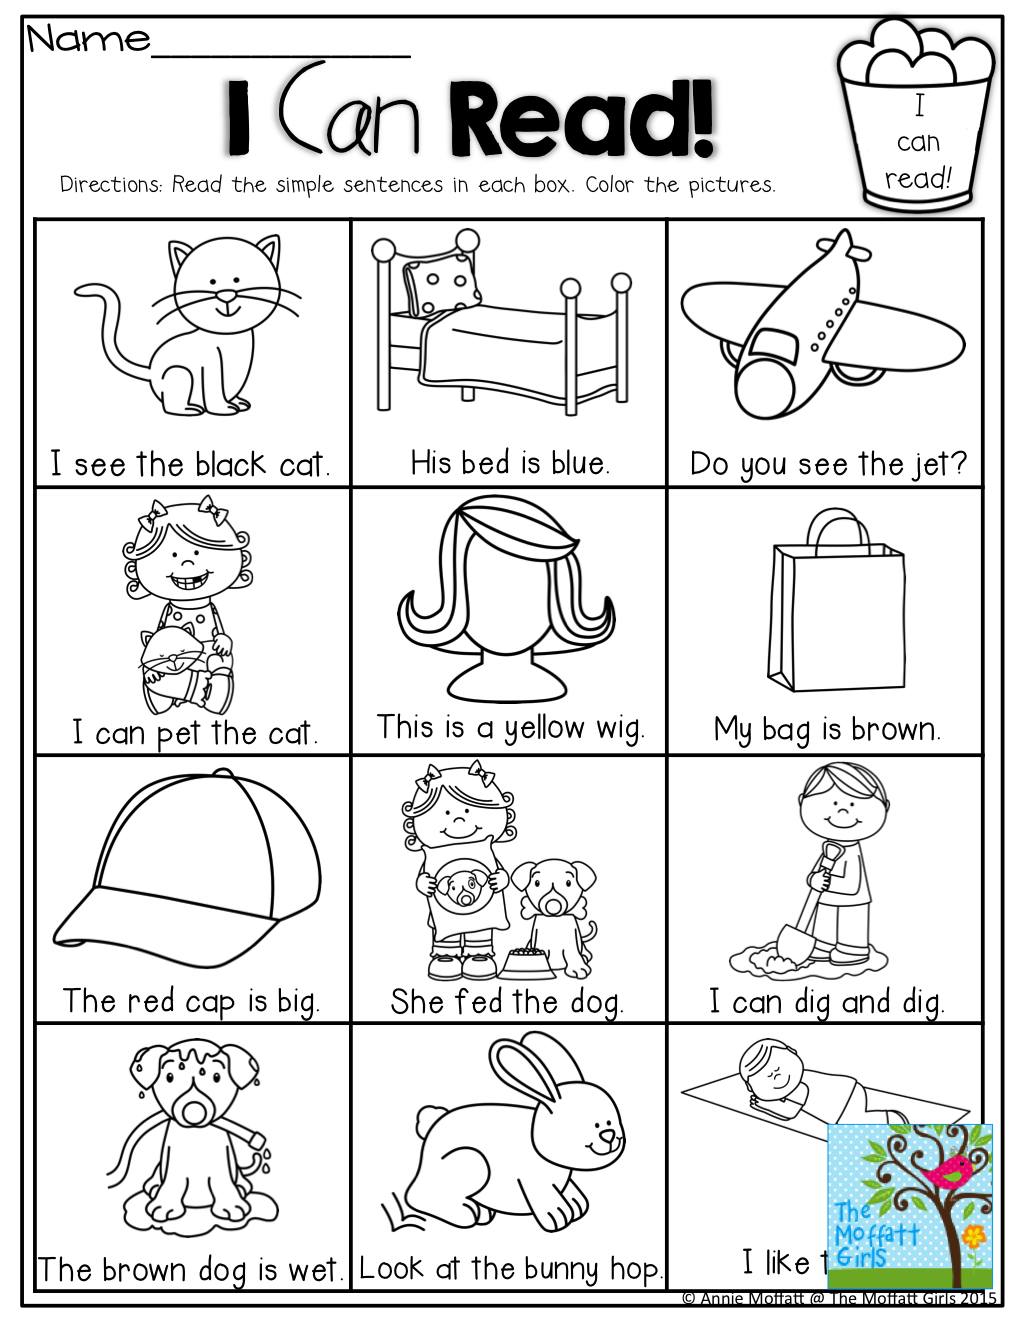 Worksheets Read And Color Worksheets read and color the simple sentence correctly i can like this as kids in pics they know sentences with sight words cvc matching pictures